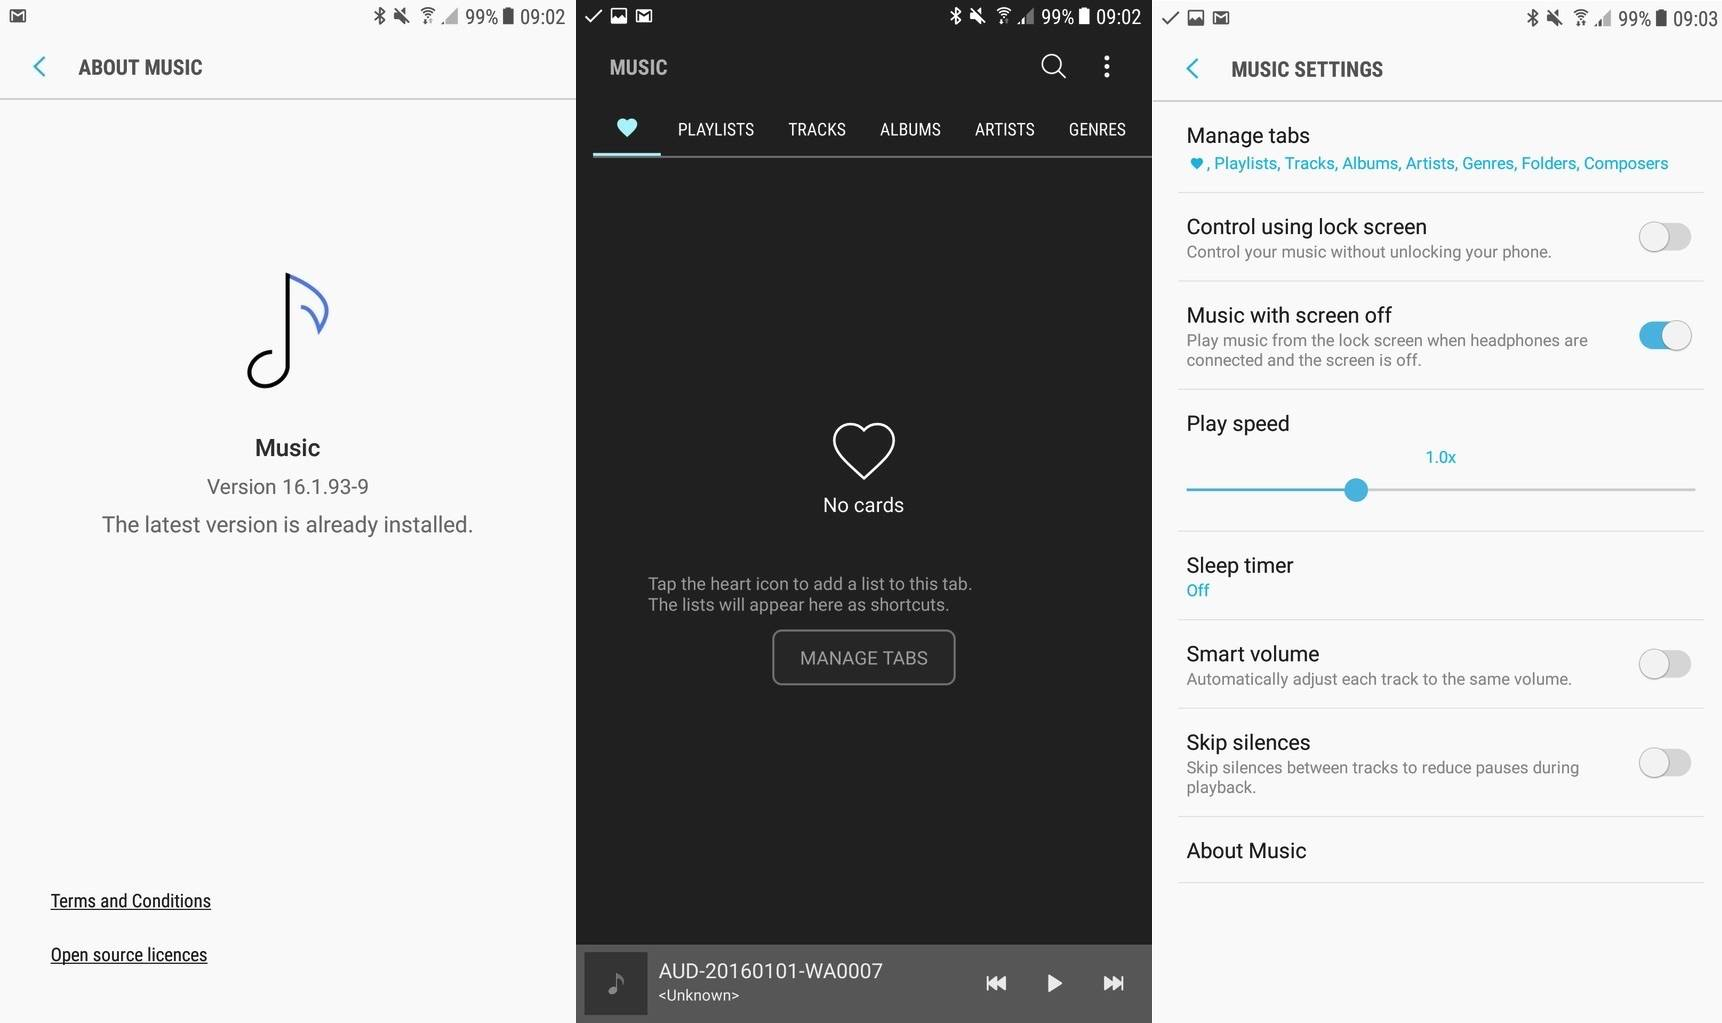 Samsung Galaxy S8 to get an updated Music app, APK now ready